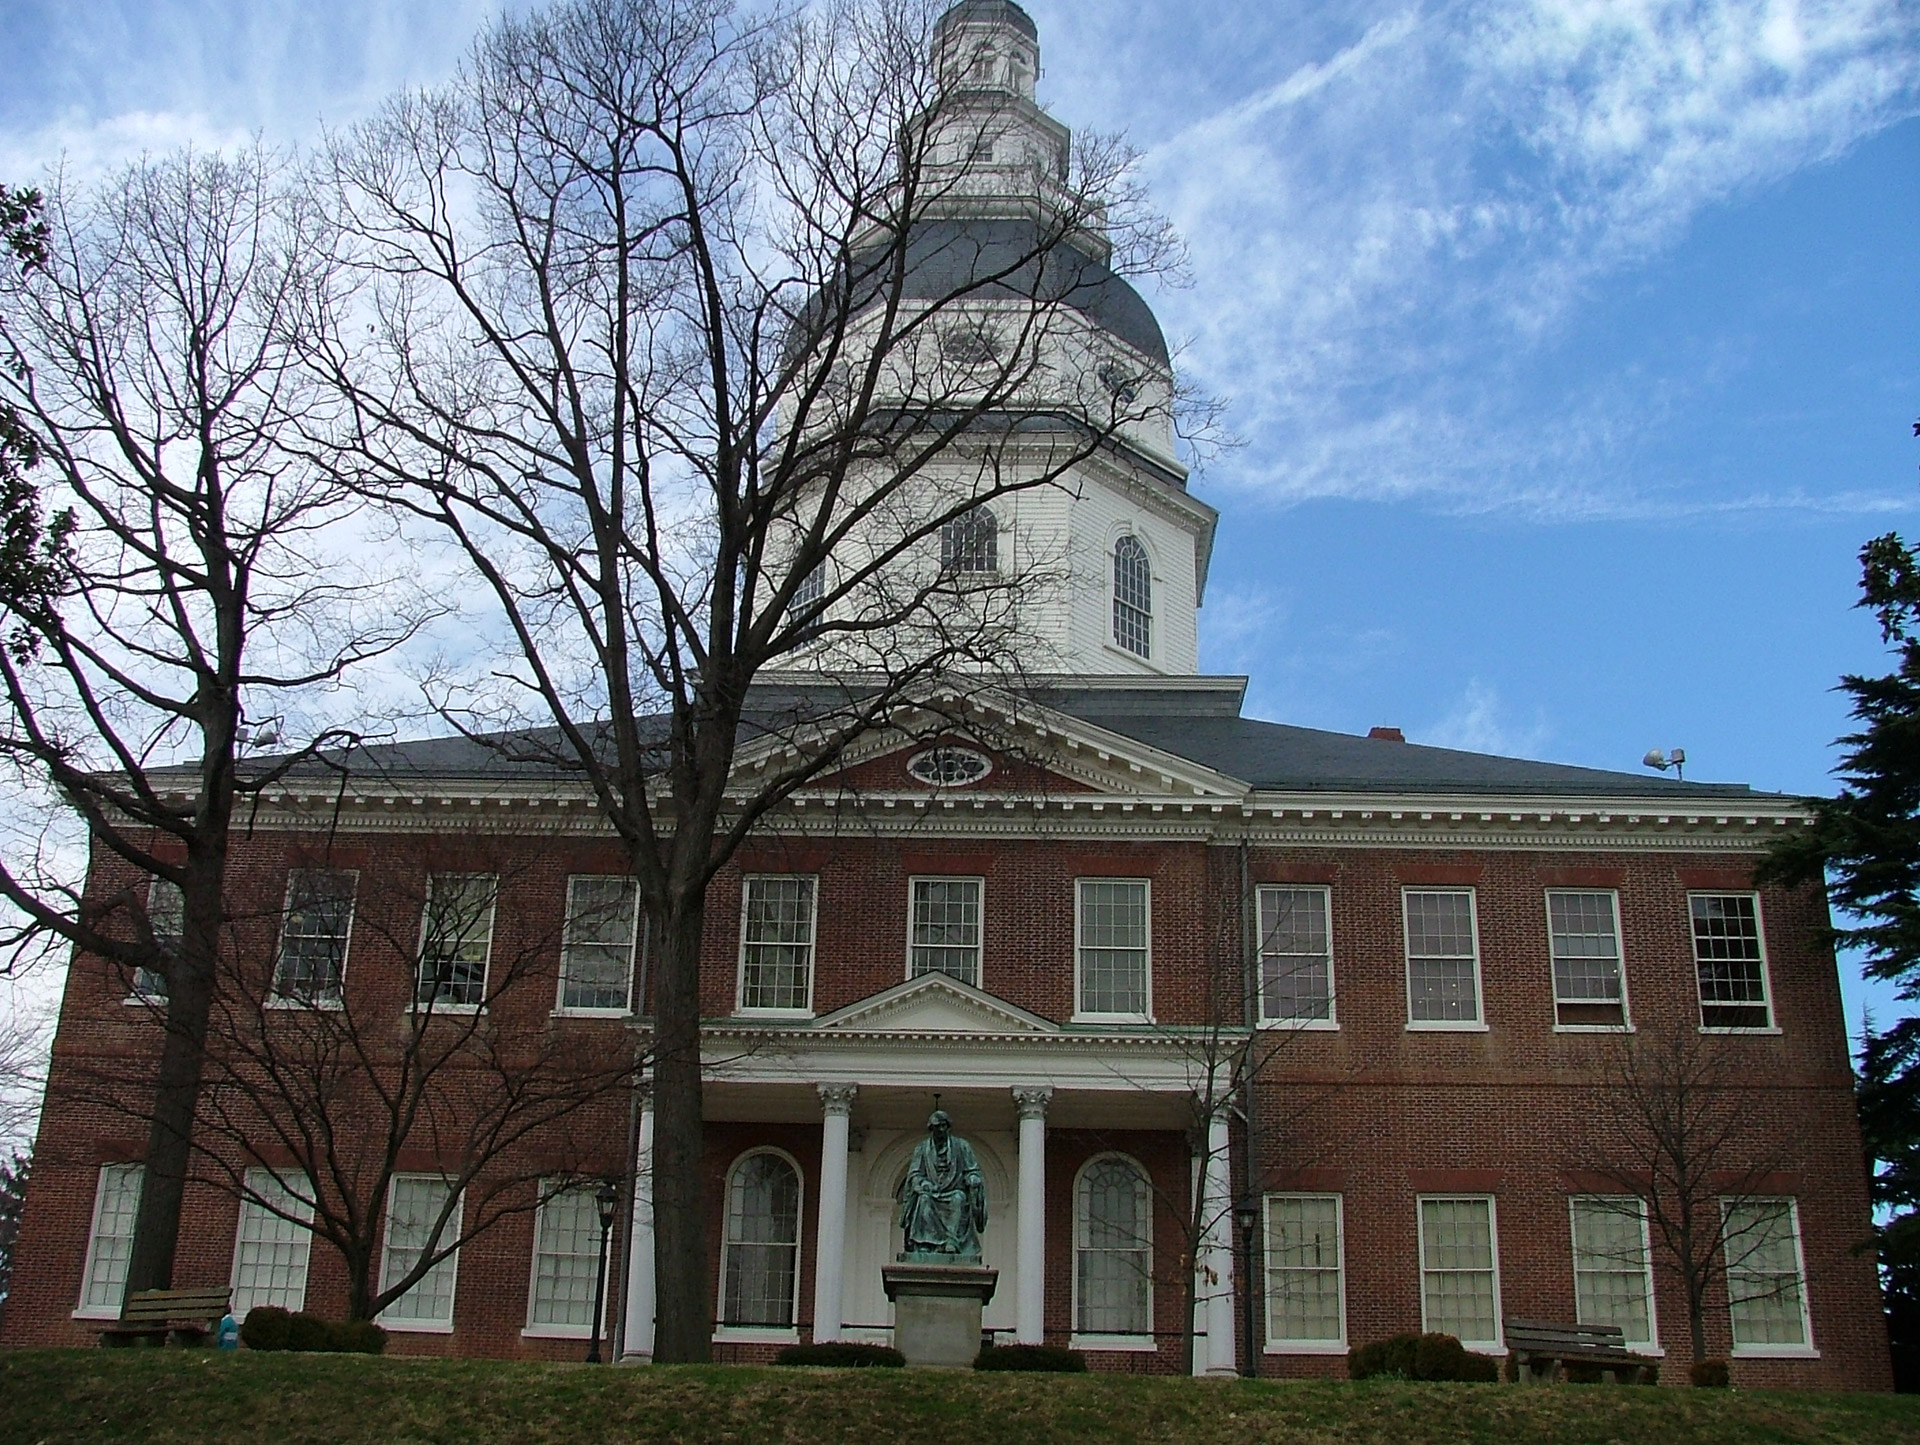 annapolis-maryland-state-house.jpg